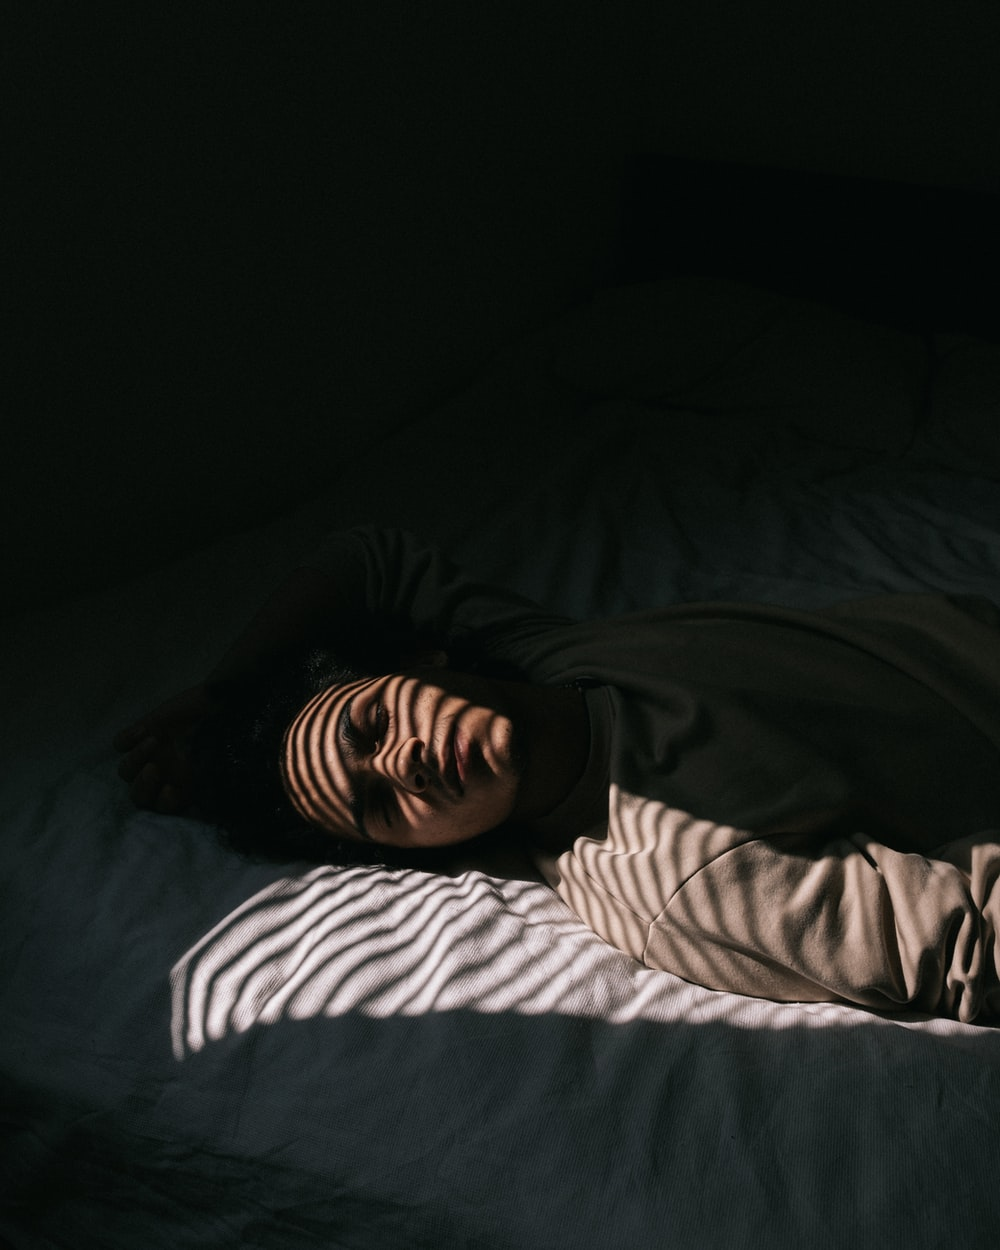 man in black and white striped long sleeve shirt lying on bed